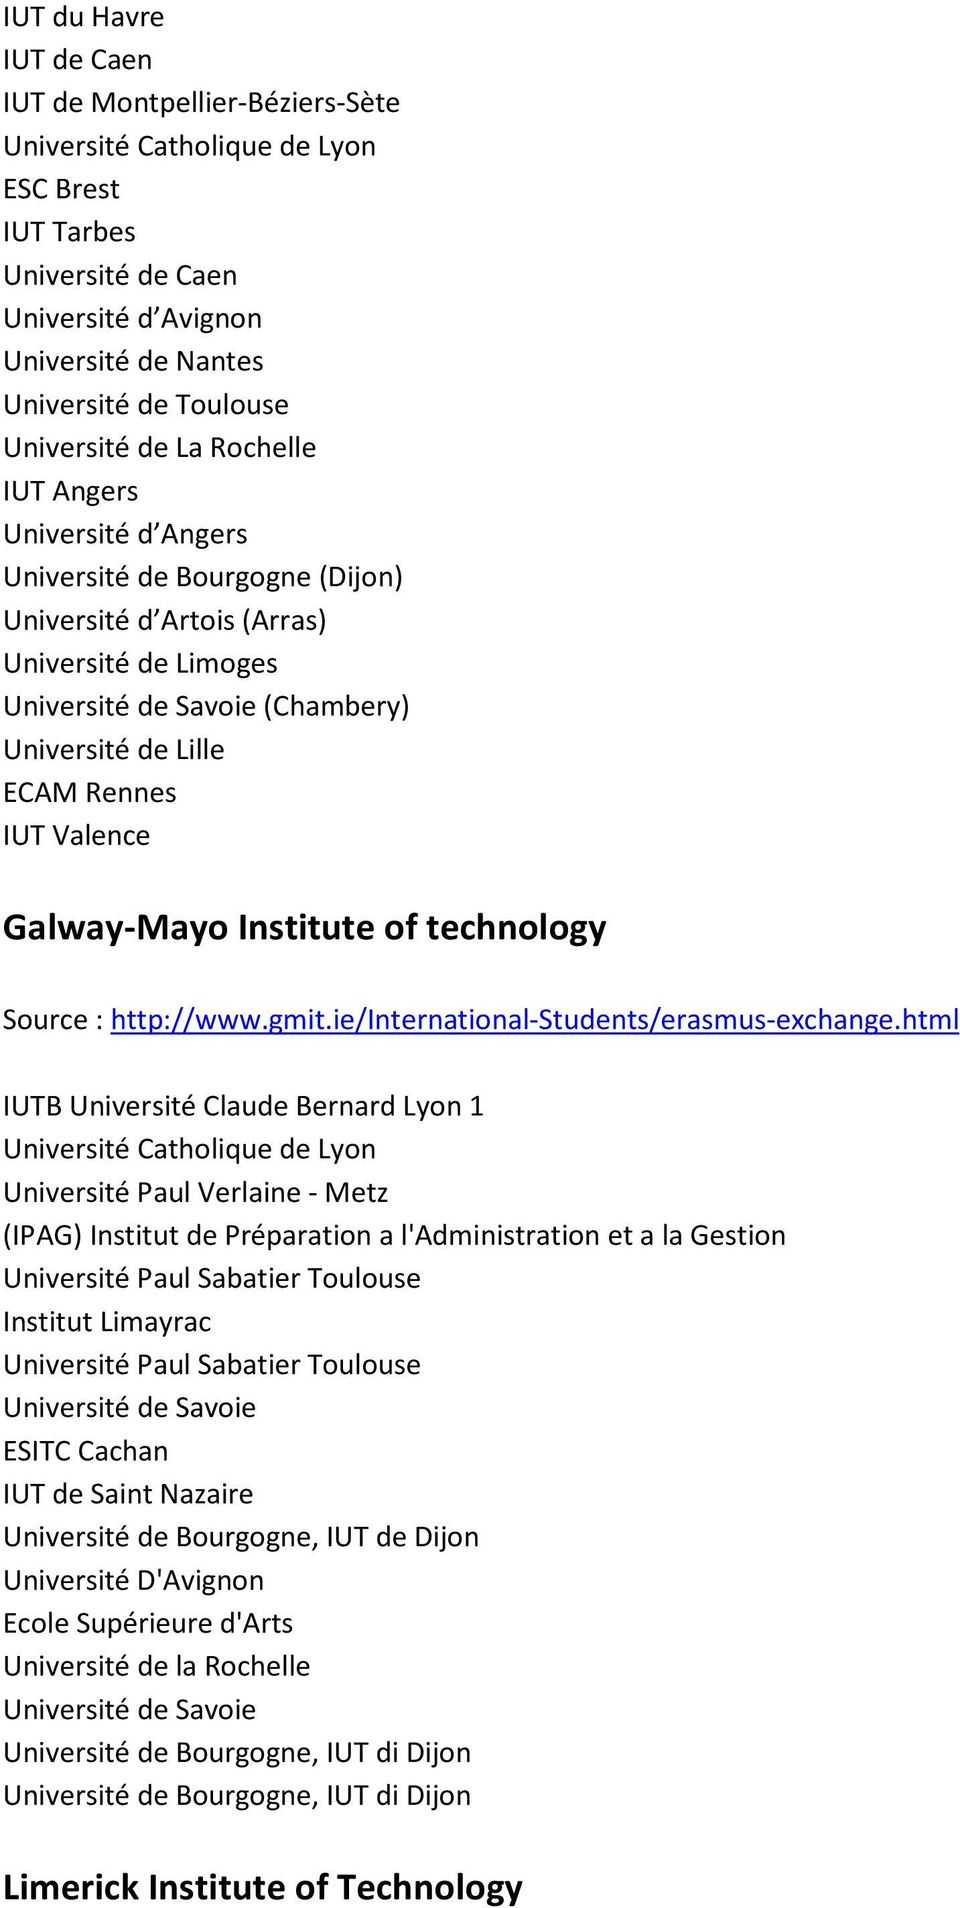 Rennes IUT Valence Galway-Mayo Institute of technology Source : http://www.gmit.ie/international-students/erasmus-exchange.